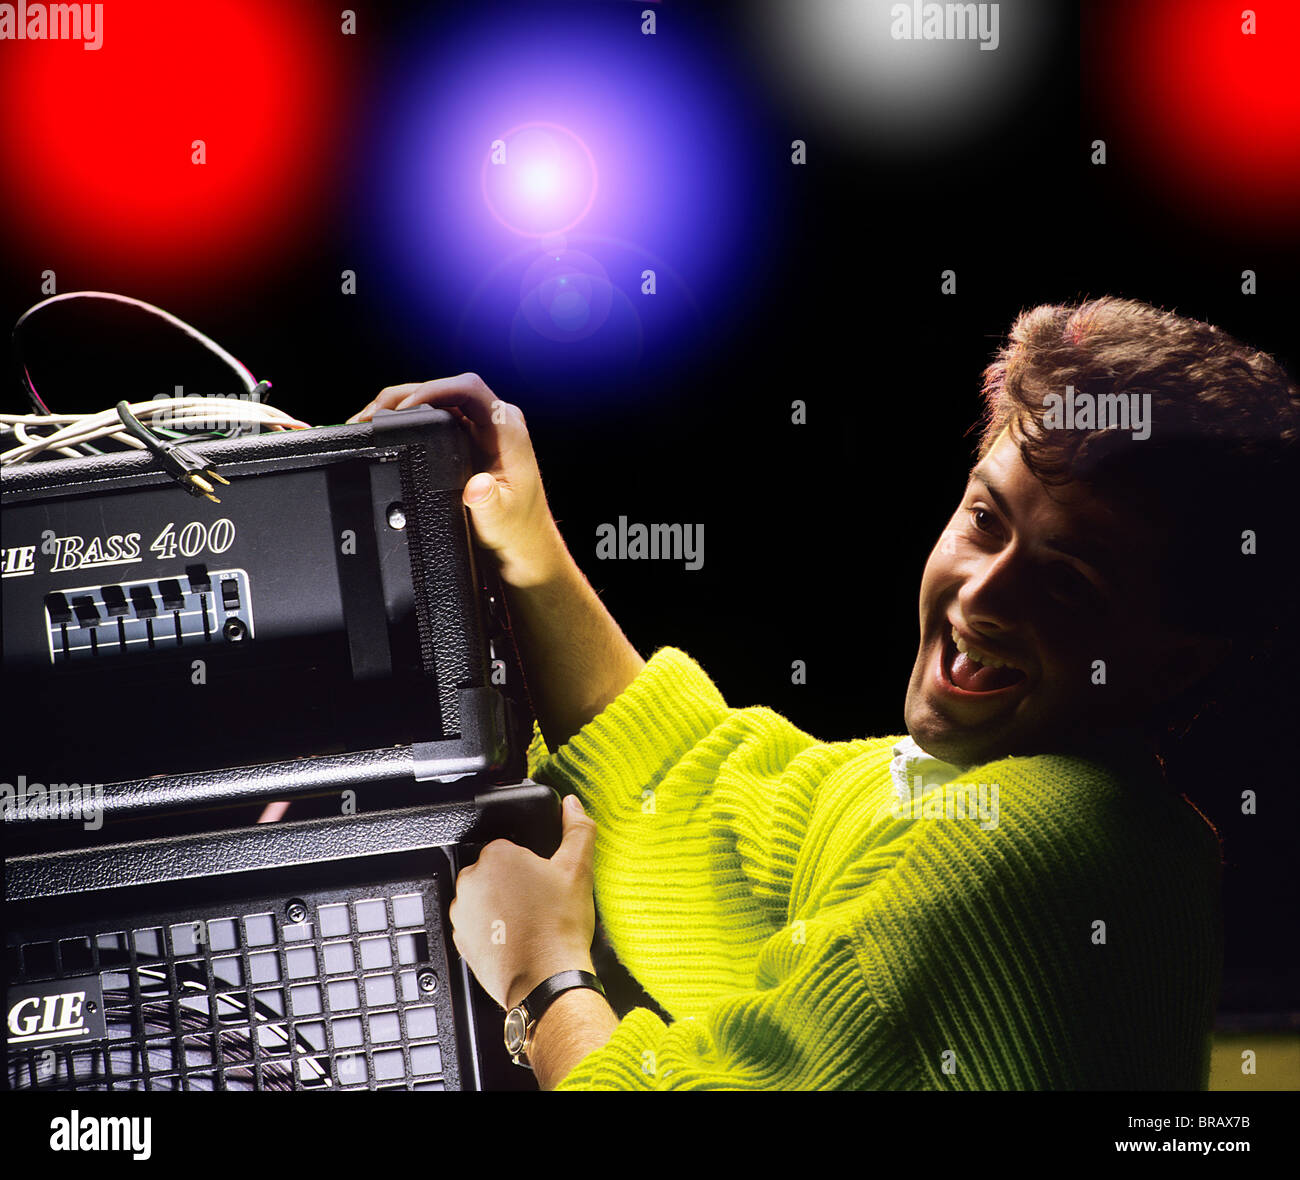 Roadie loading amplifier on stage, setting up for rock band or group - Stock Image